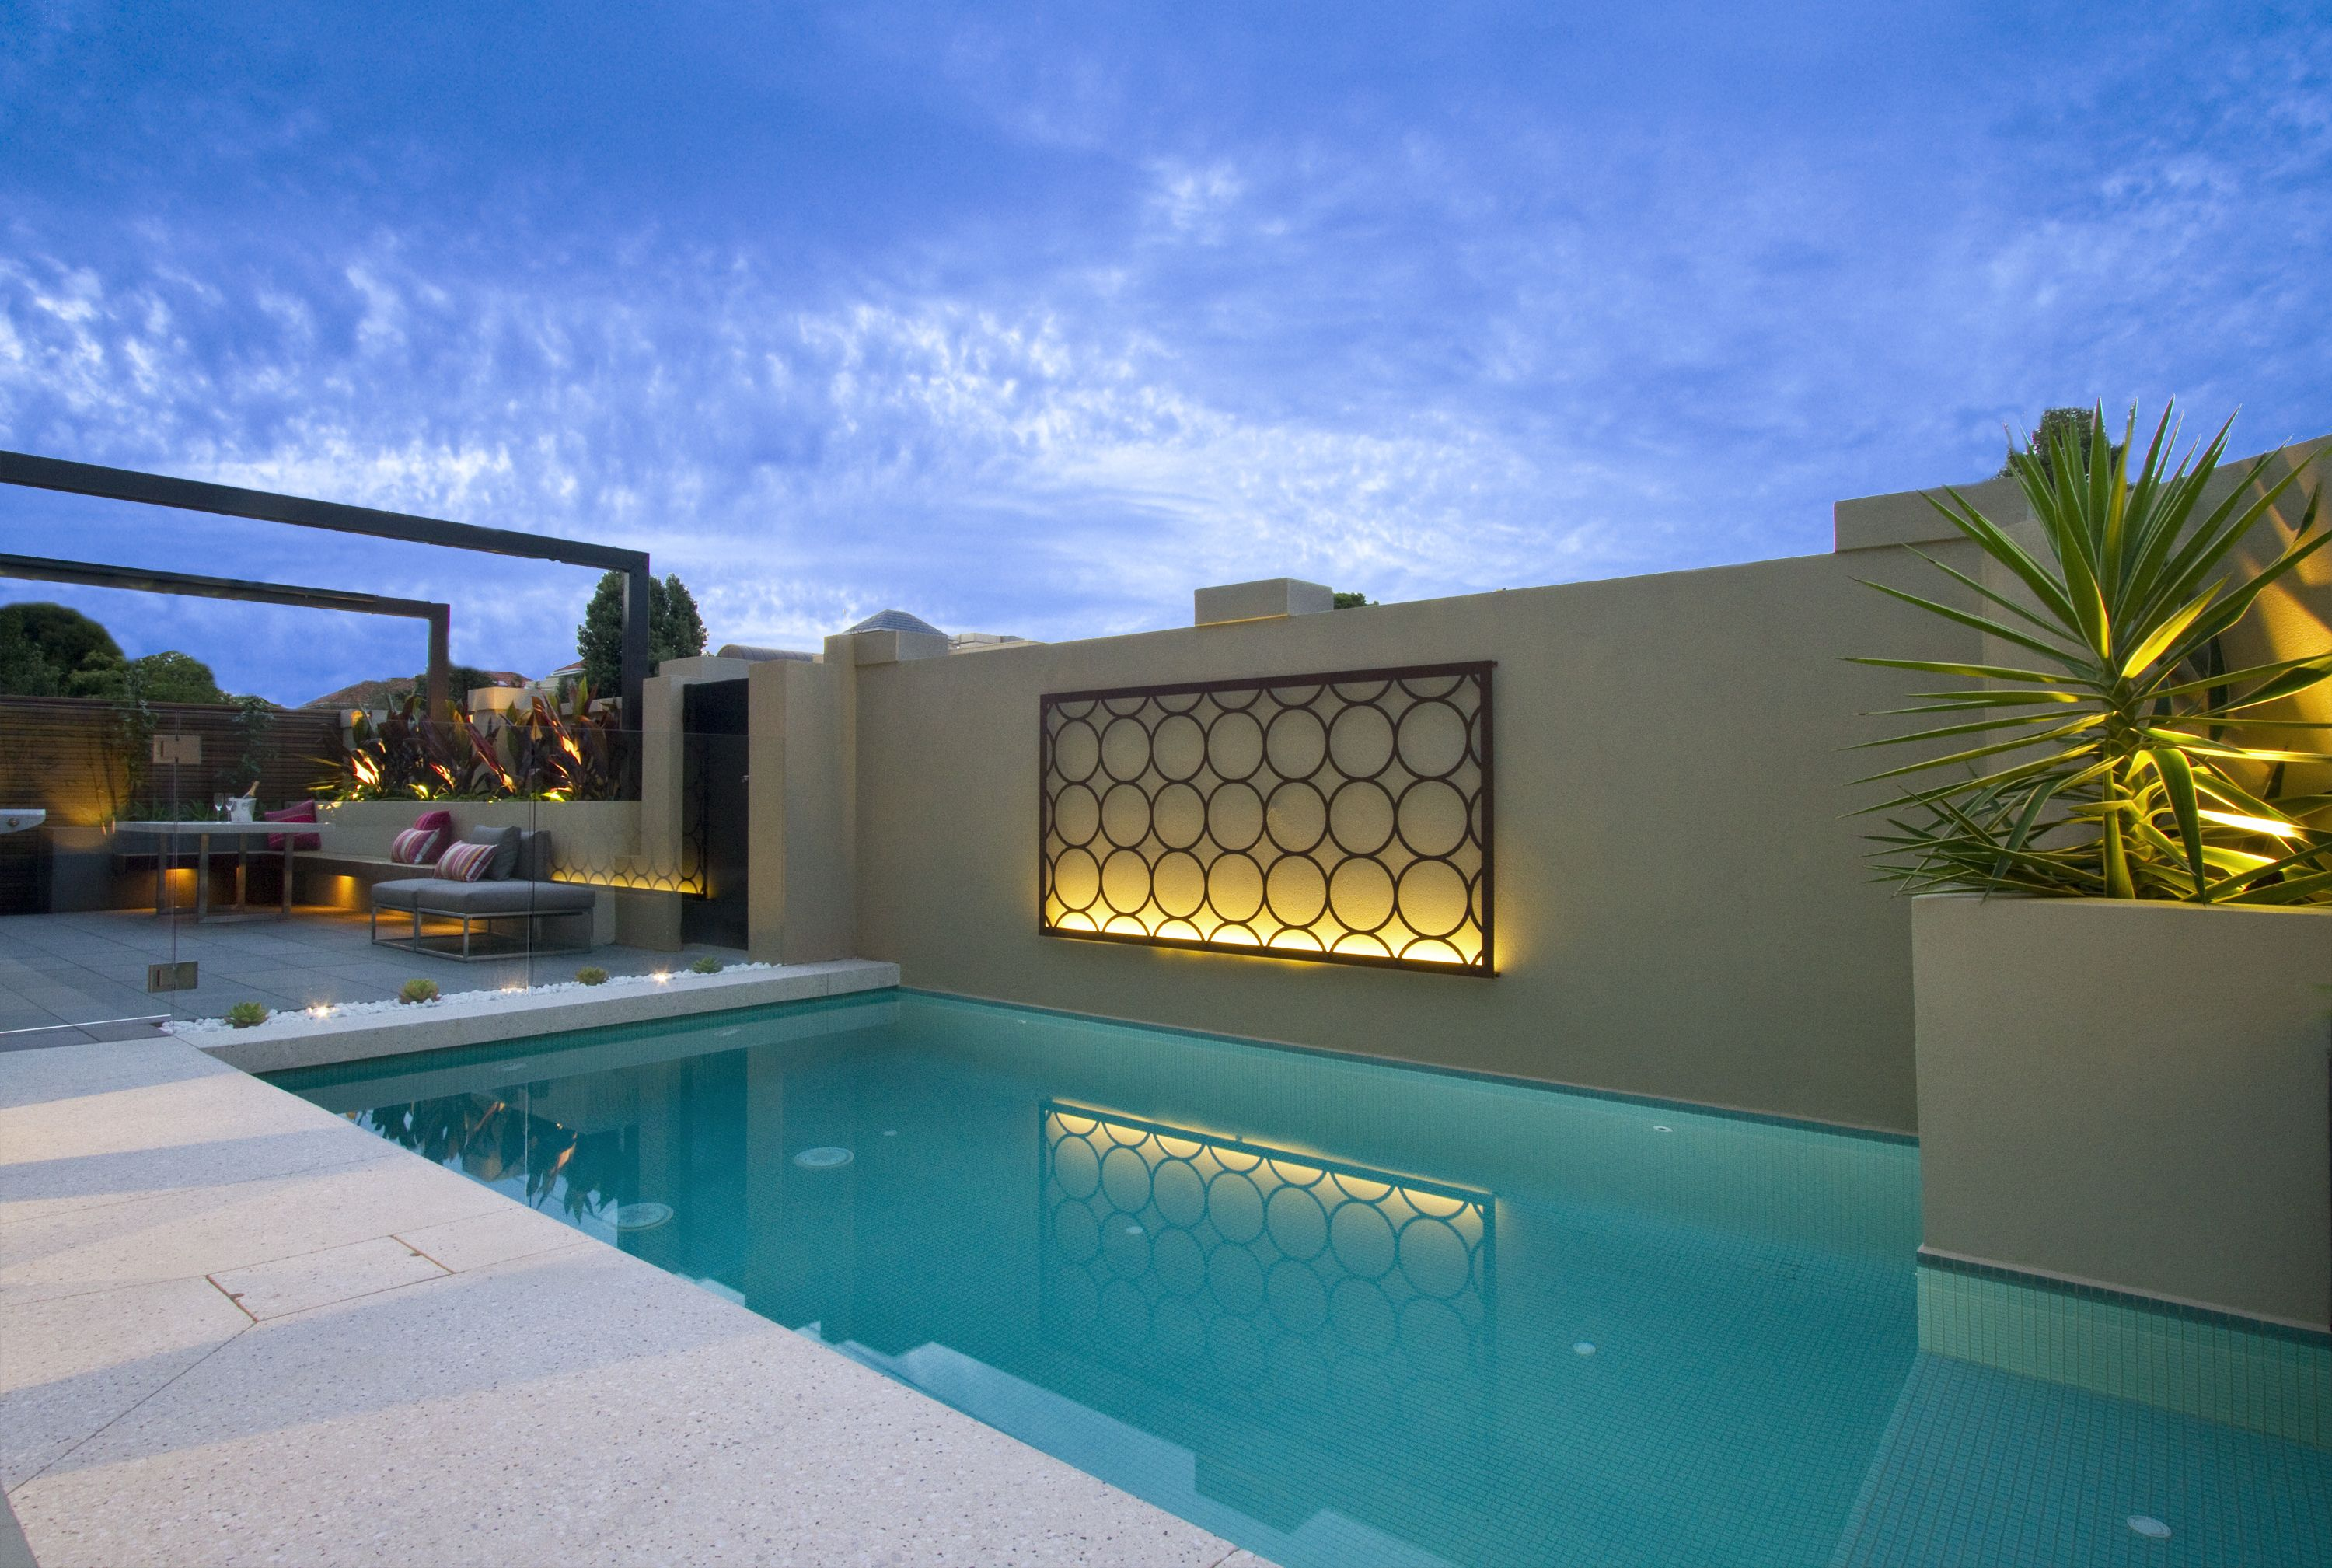 Image Ownership Of Baden Pools. We Love Our Metal Wall Art With LED  Lighting!